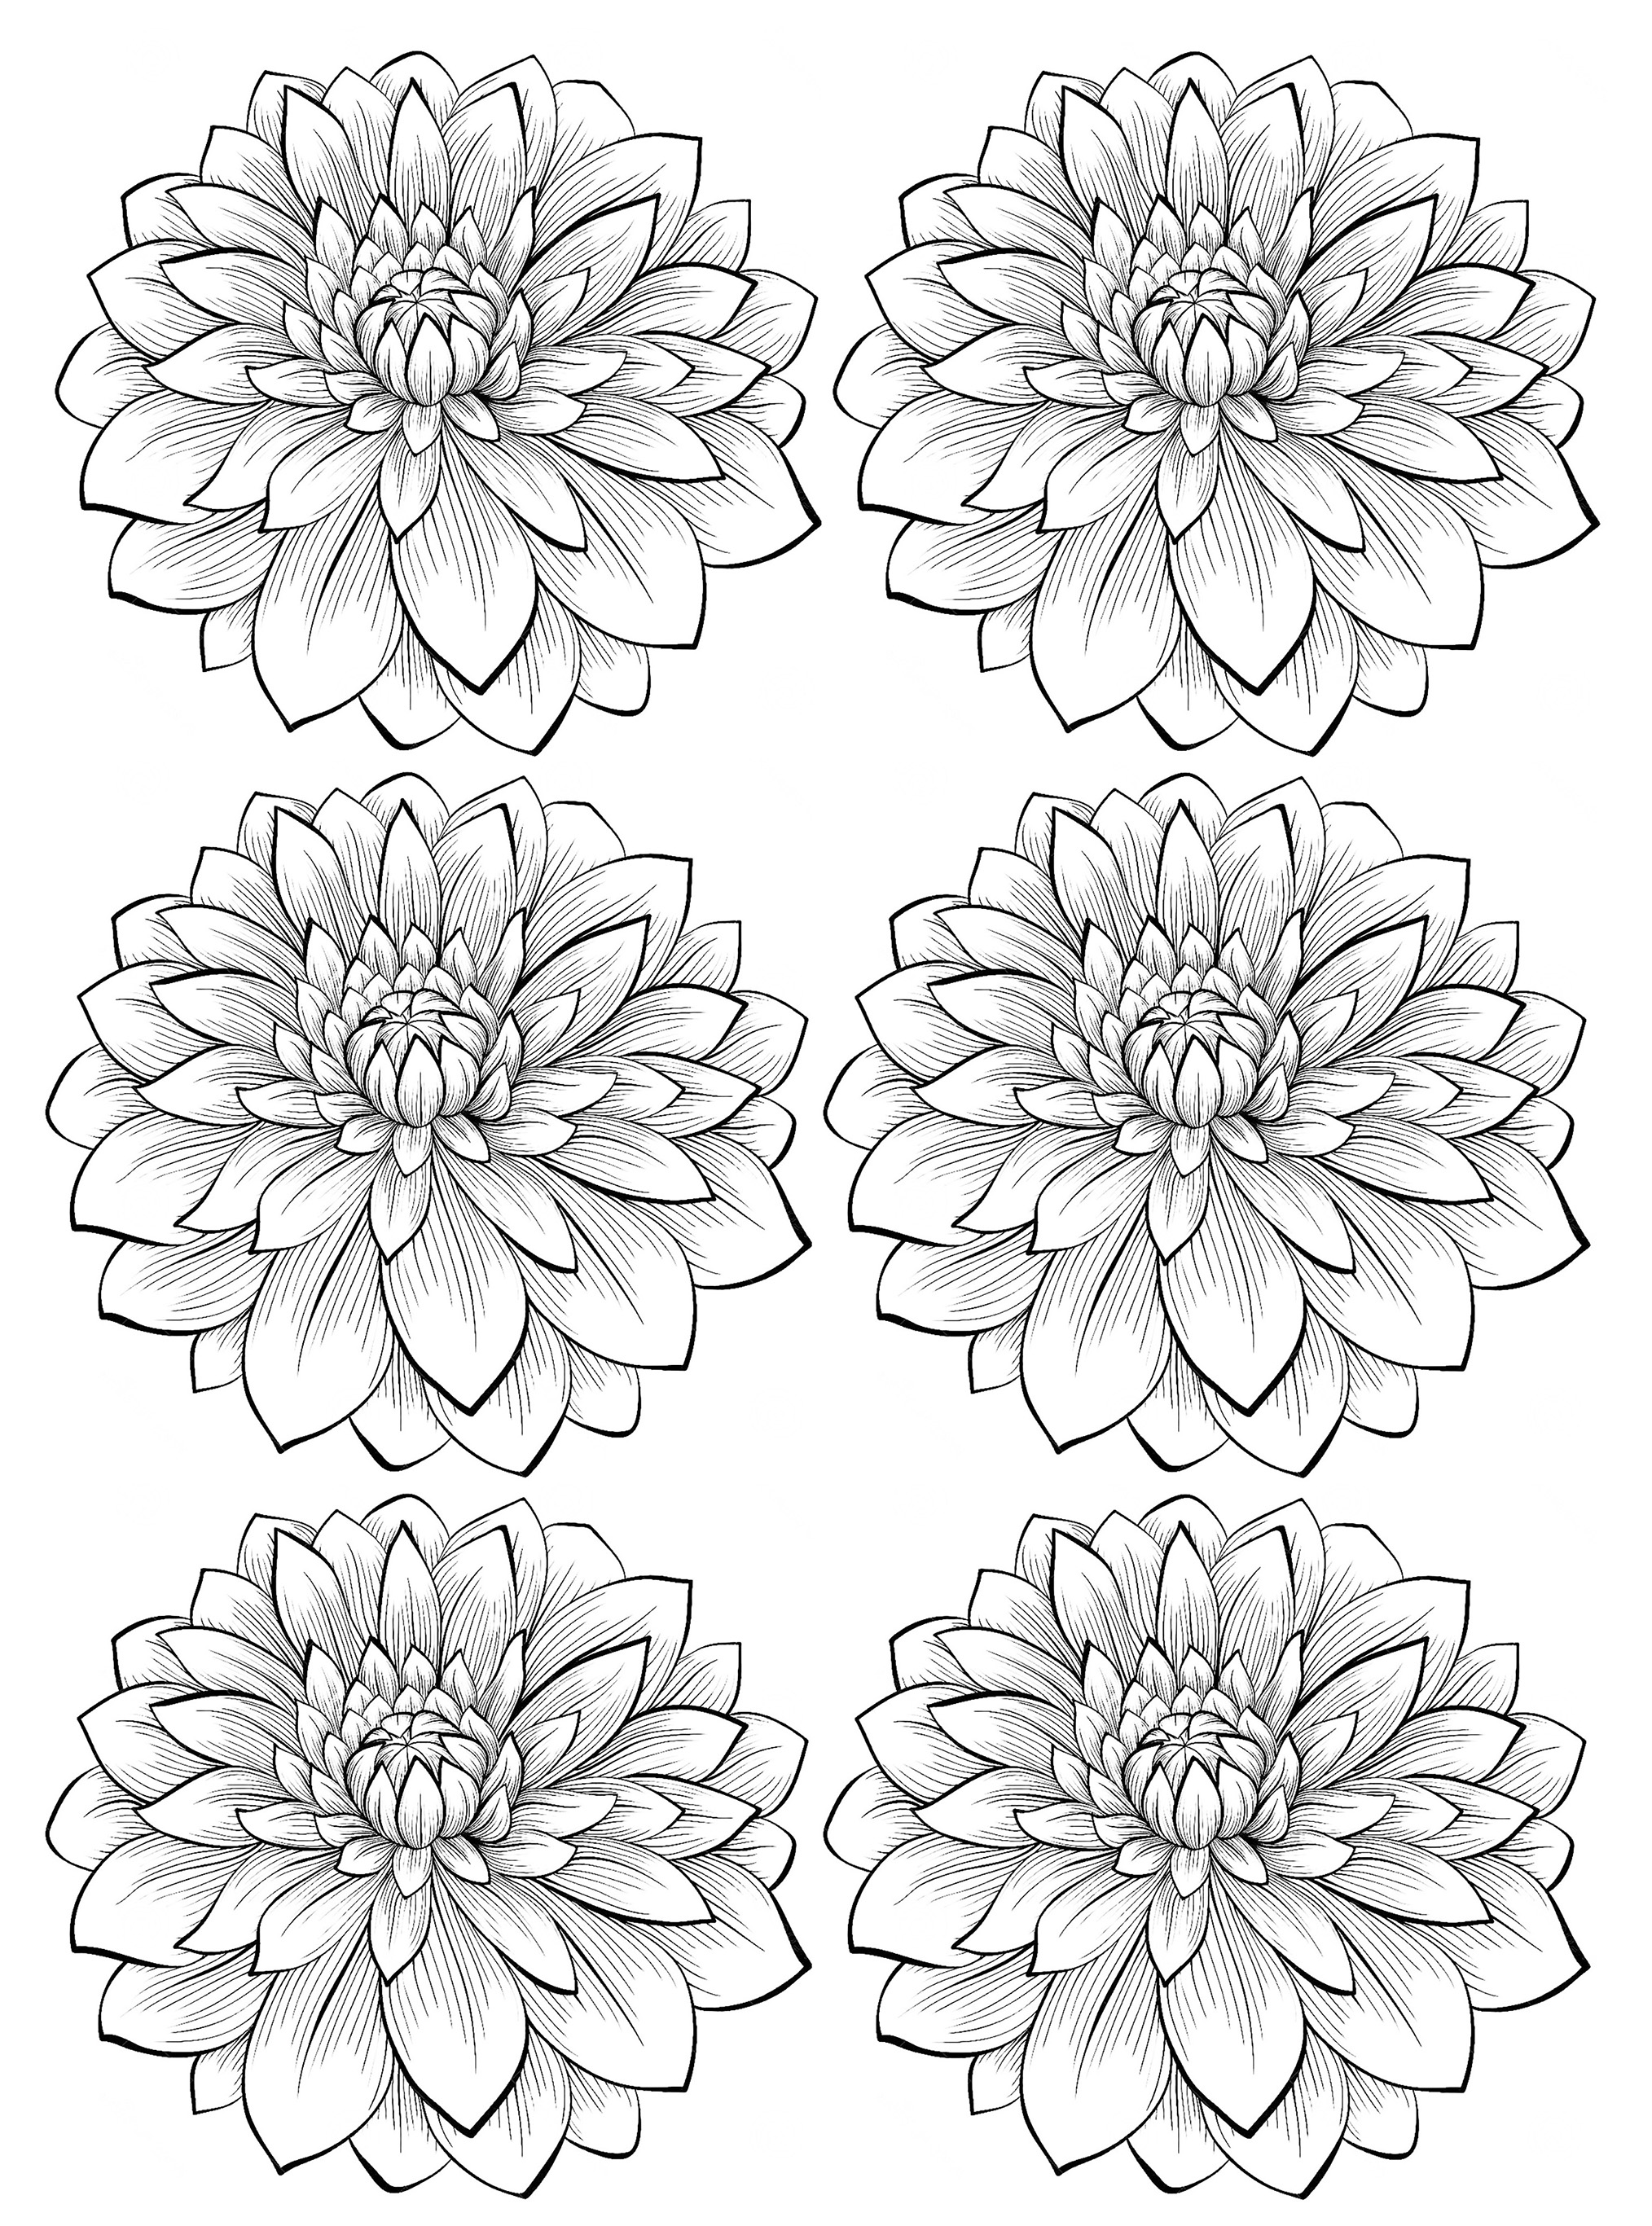 coloring books for adults flowers adult coloring pages flowers to download and print for free flowers coloring adults books for